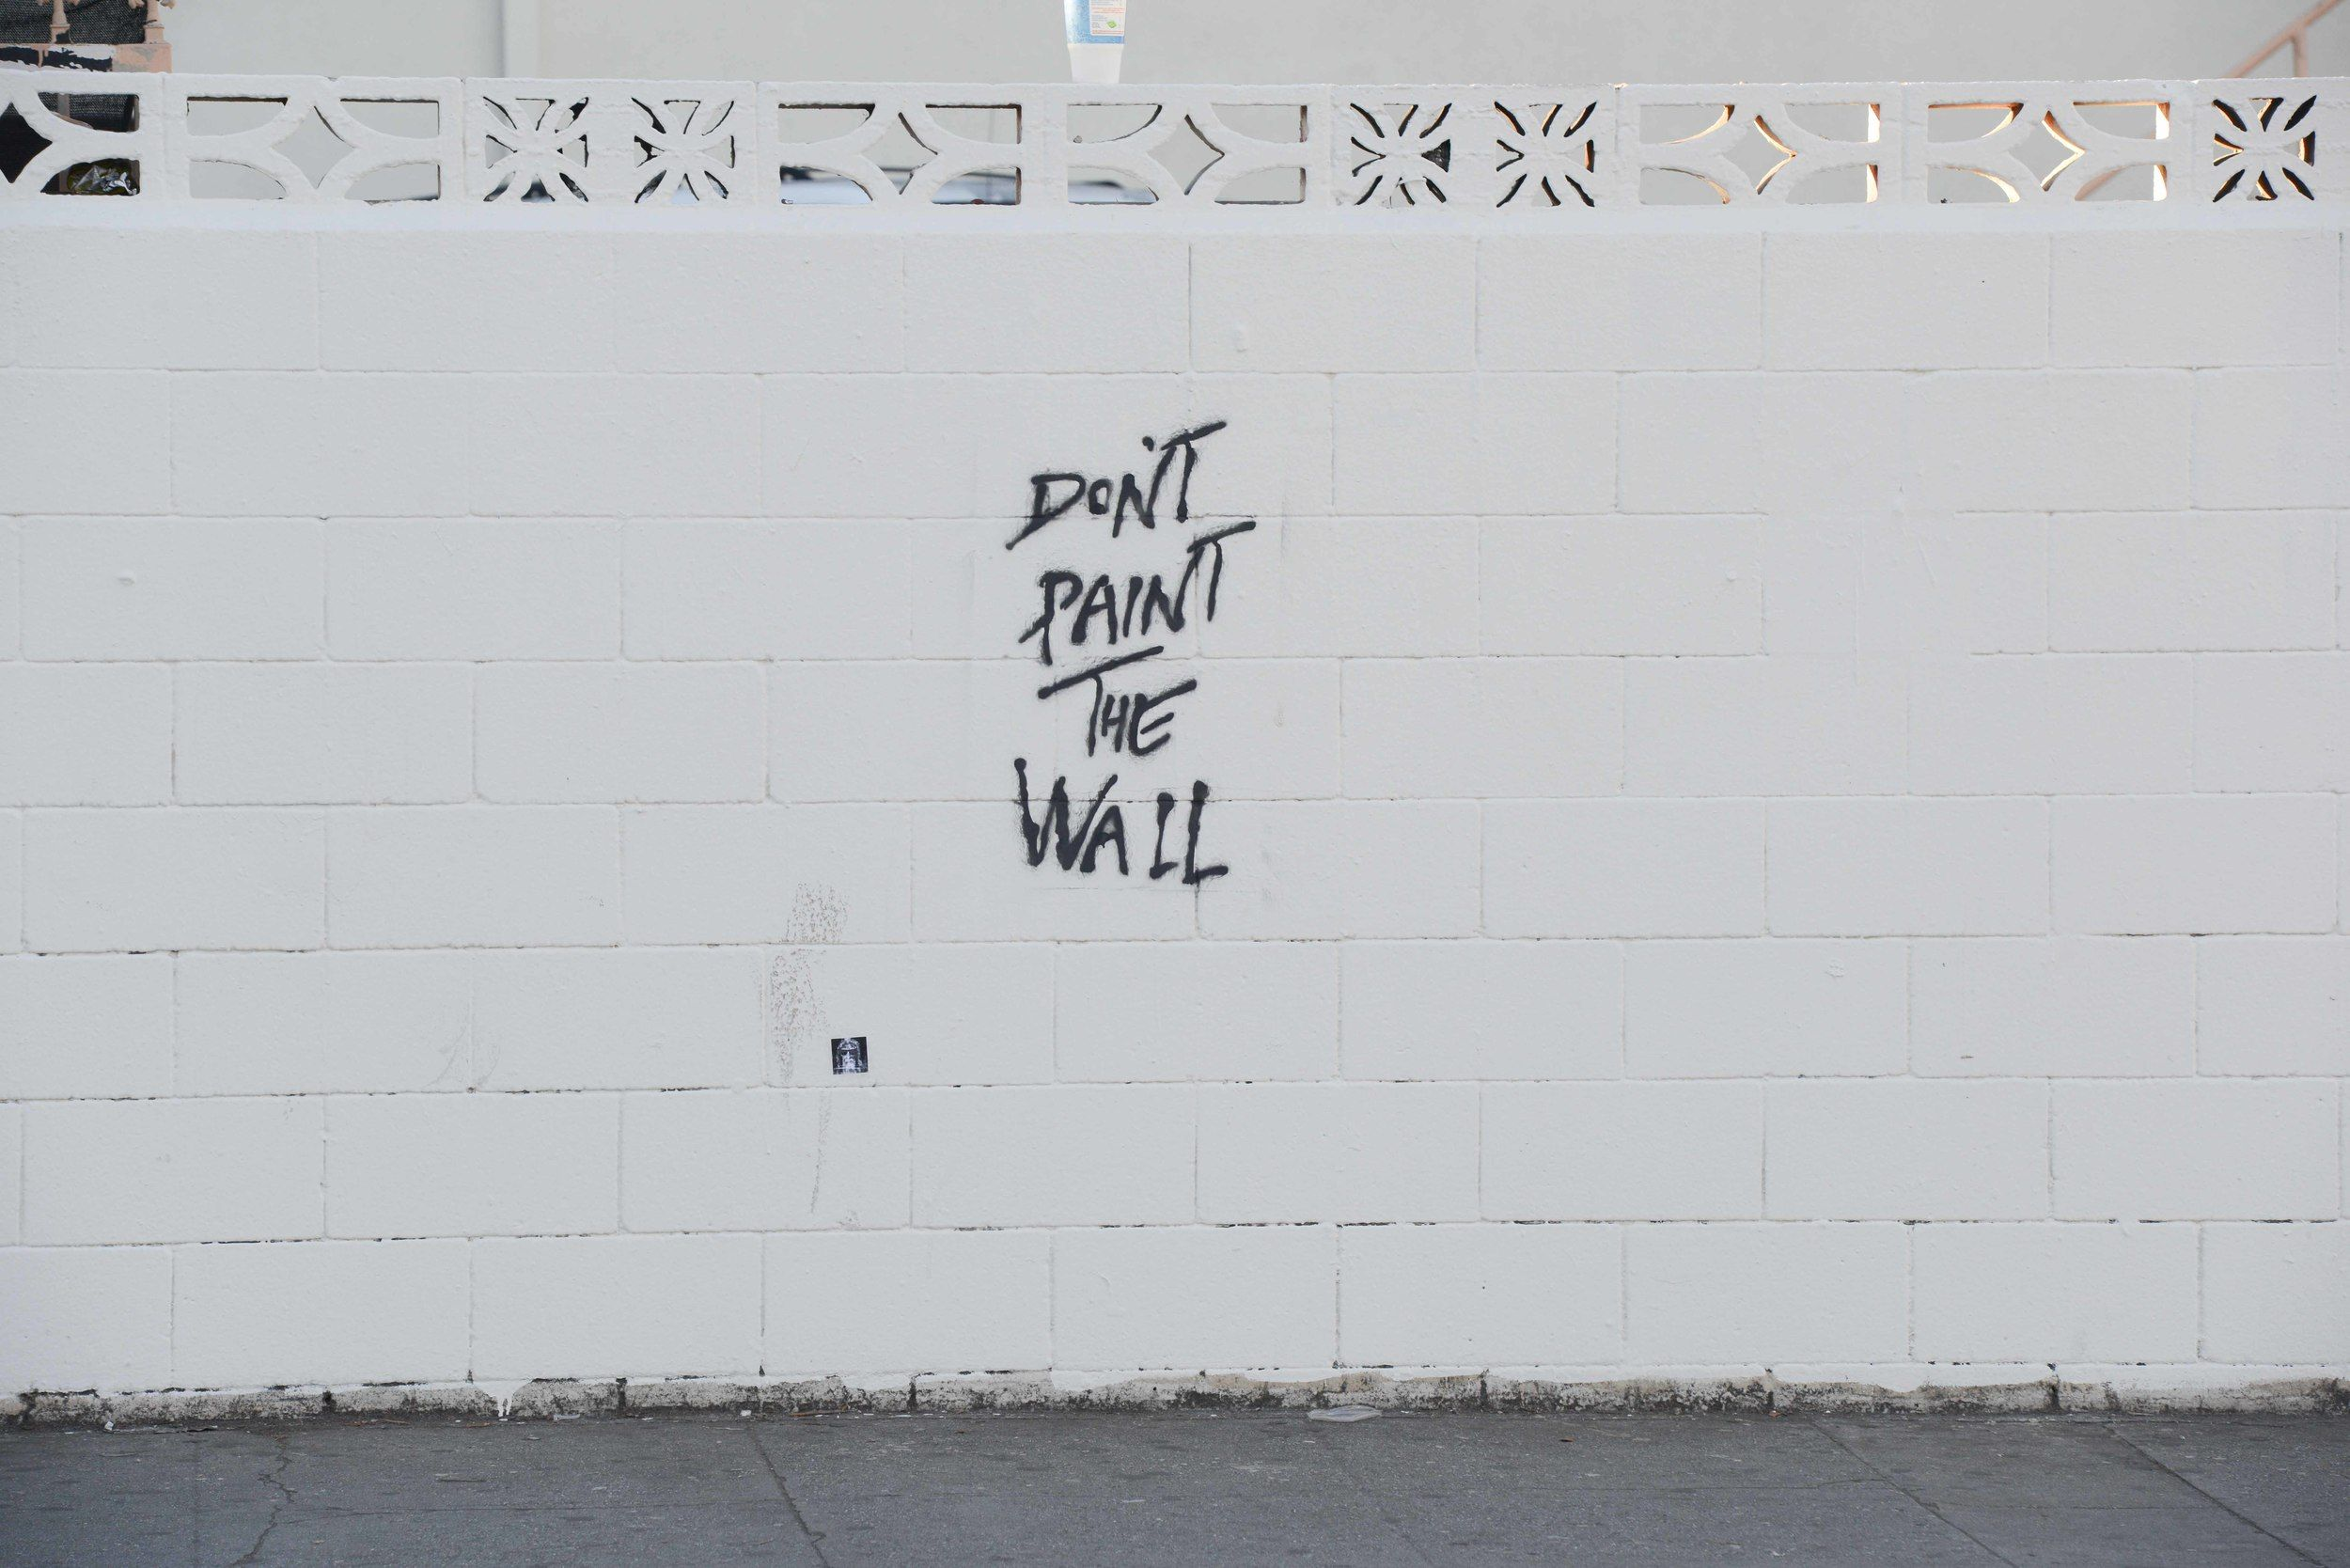 Pj dont paint the wall 1g the earth without art is just eh pj dont paint the wall 1g amipublicfo Gallery